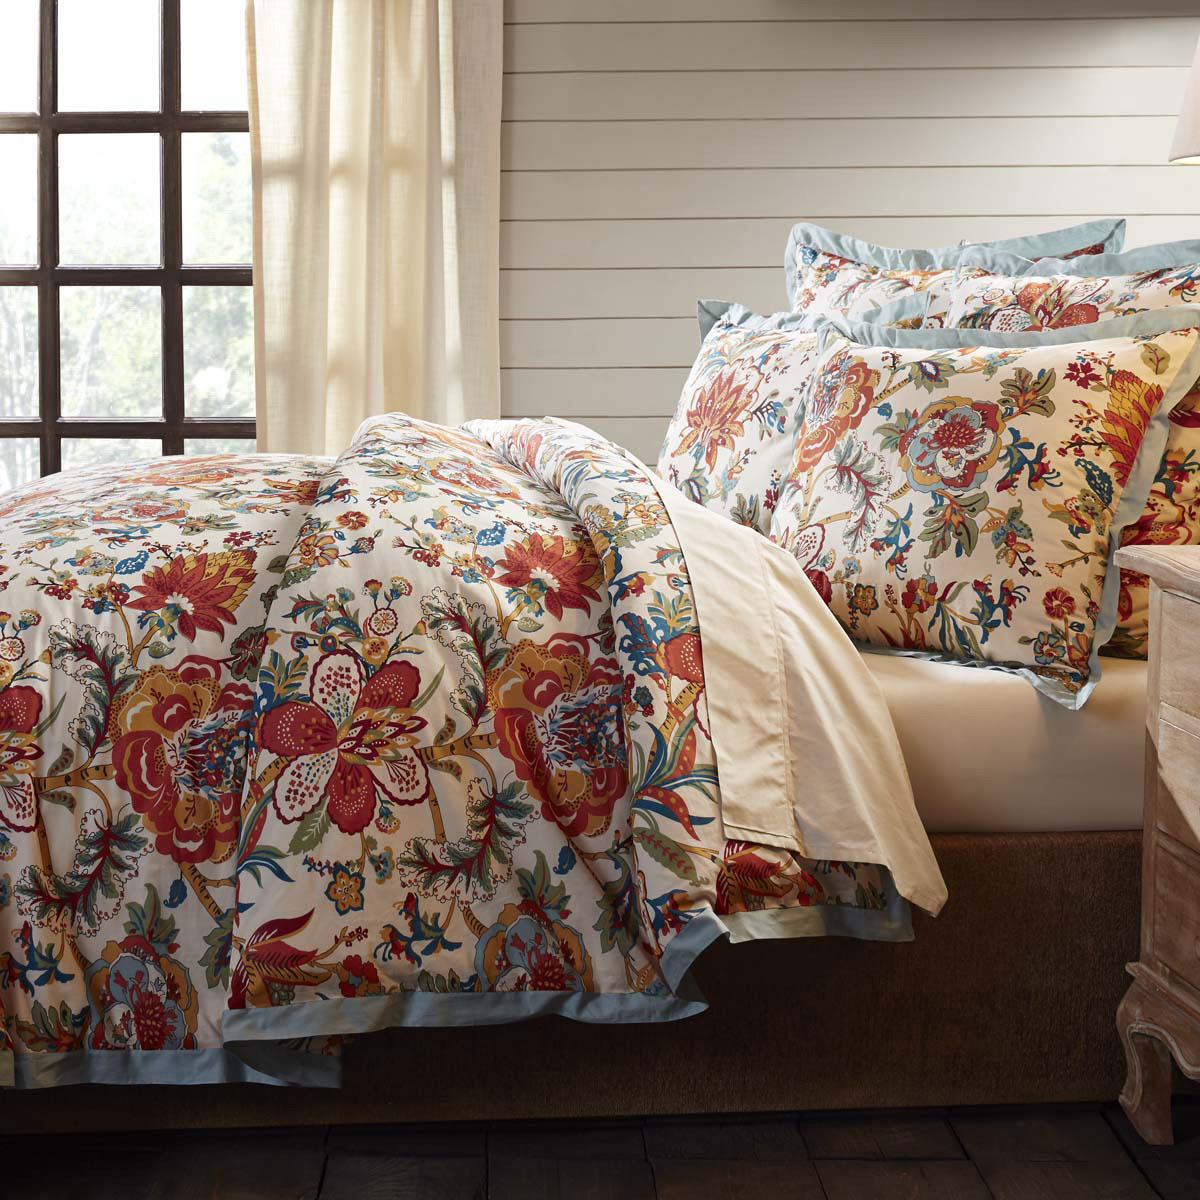 Meredith Floral Duvet Cover, by VHC Brands.